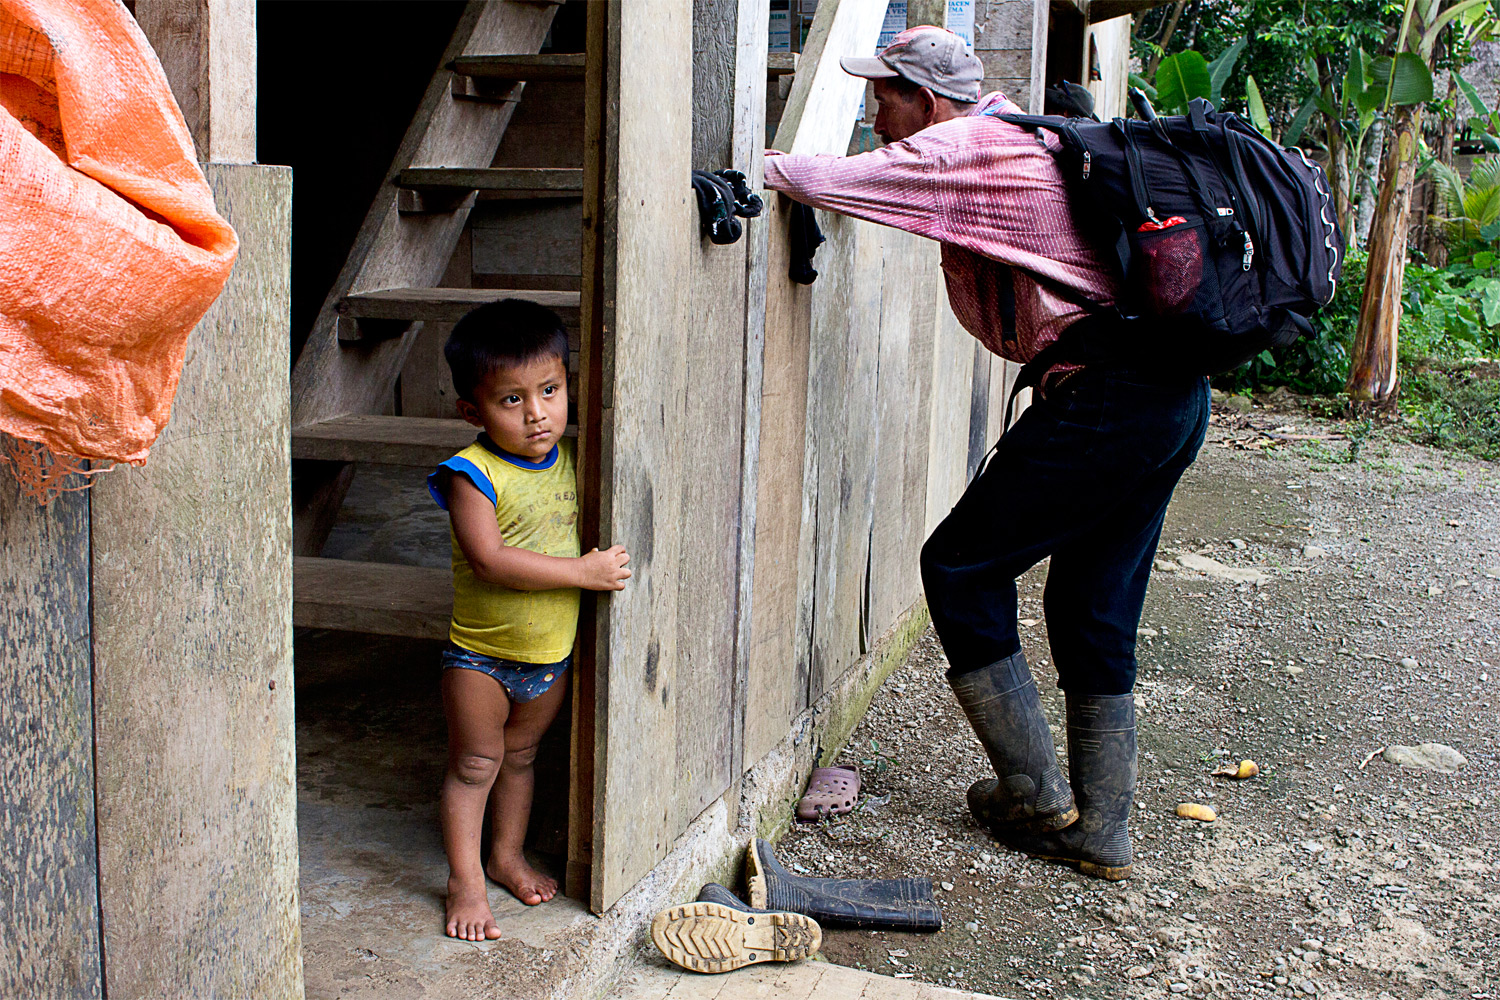 A little boy in the village of Norteña waits expectantly for his siblings to come home from the neighbors. Norteña, located about two hours from the Caribbean coast, is a primary trading center for the  Ngäbe- Buglé.